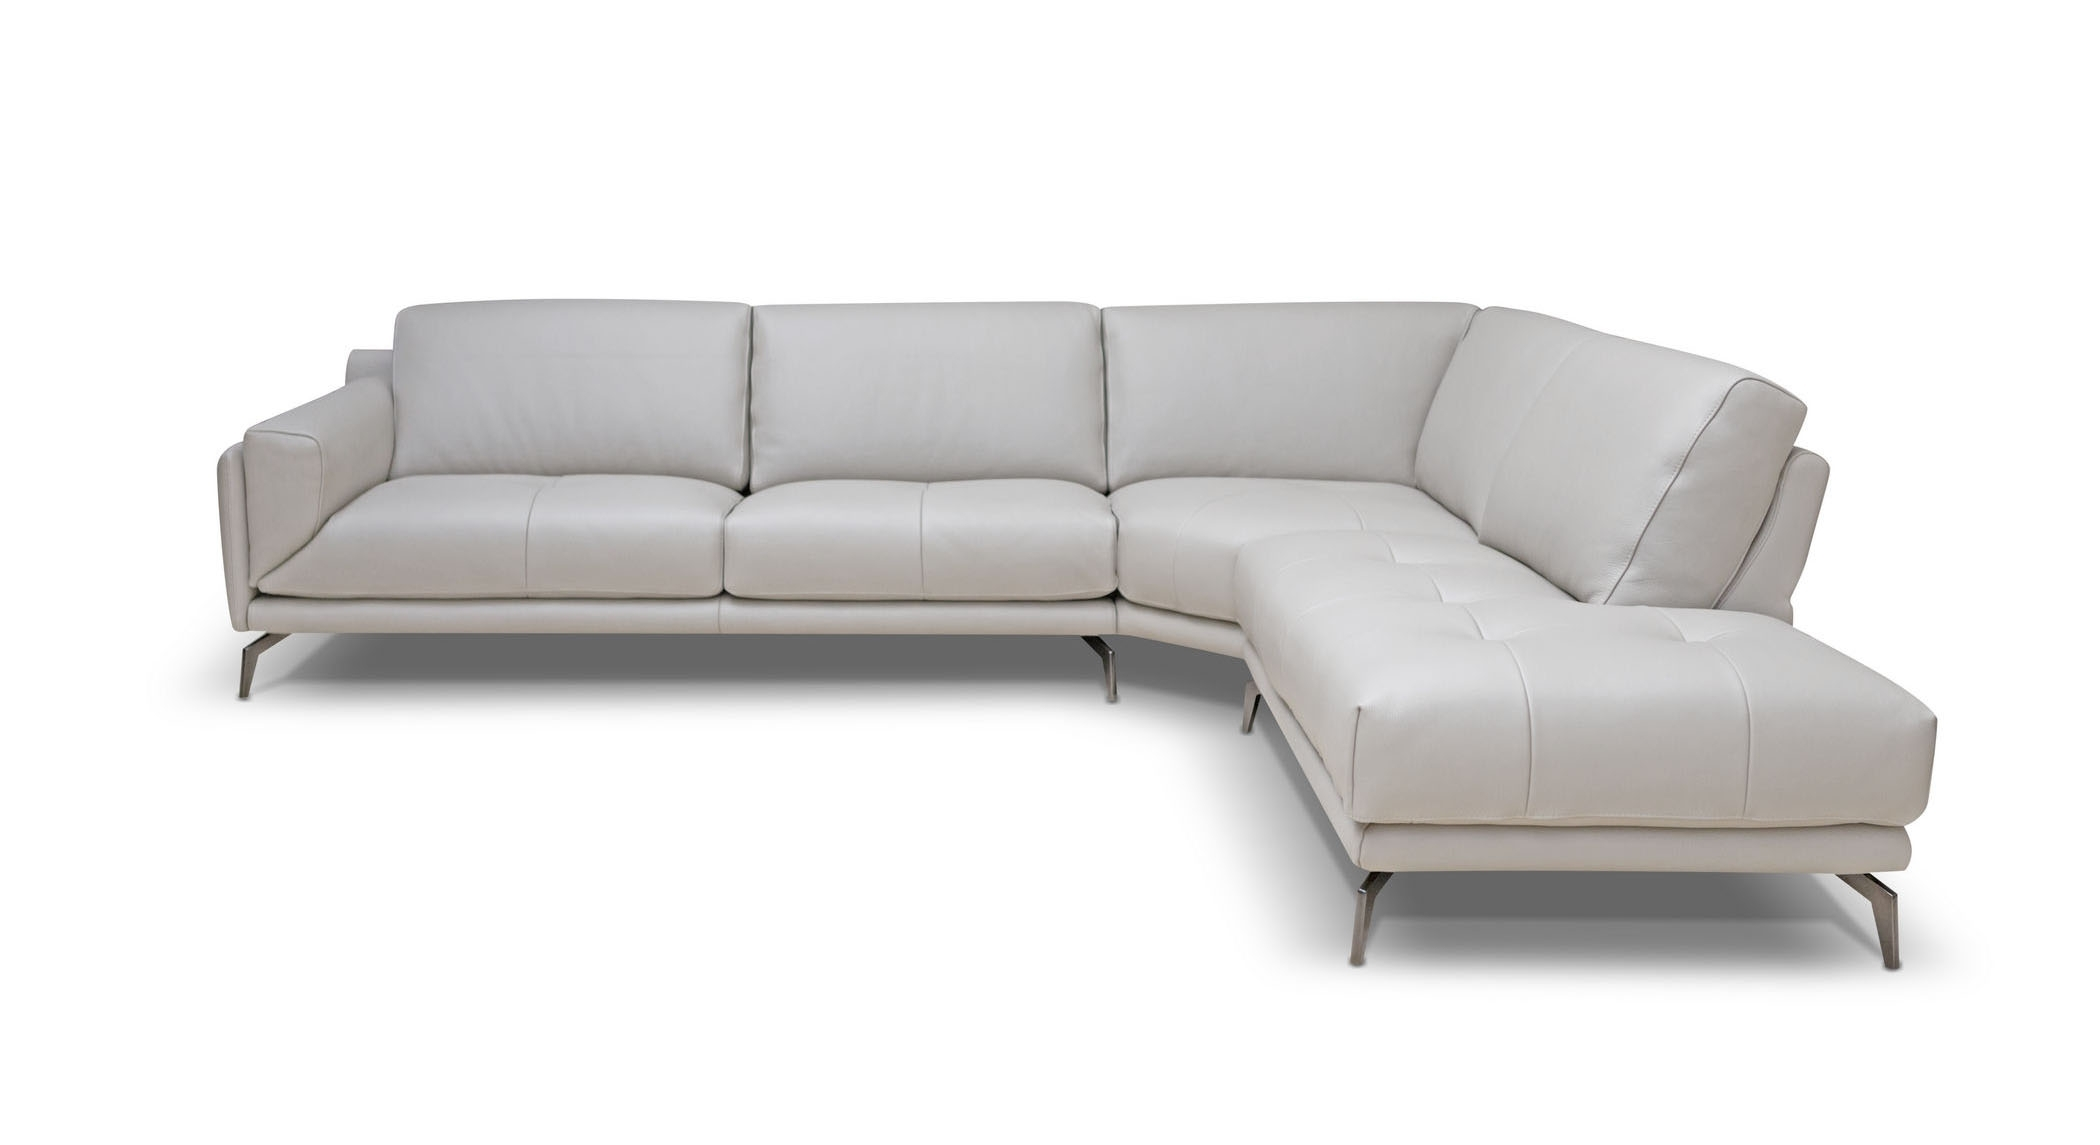 Sofas & Sectionals – Braccisofas In Glamour Ii 3 Piece Sectionals (Image 24 of 25)